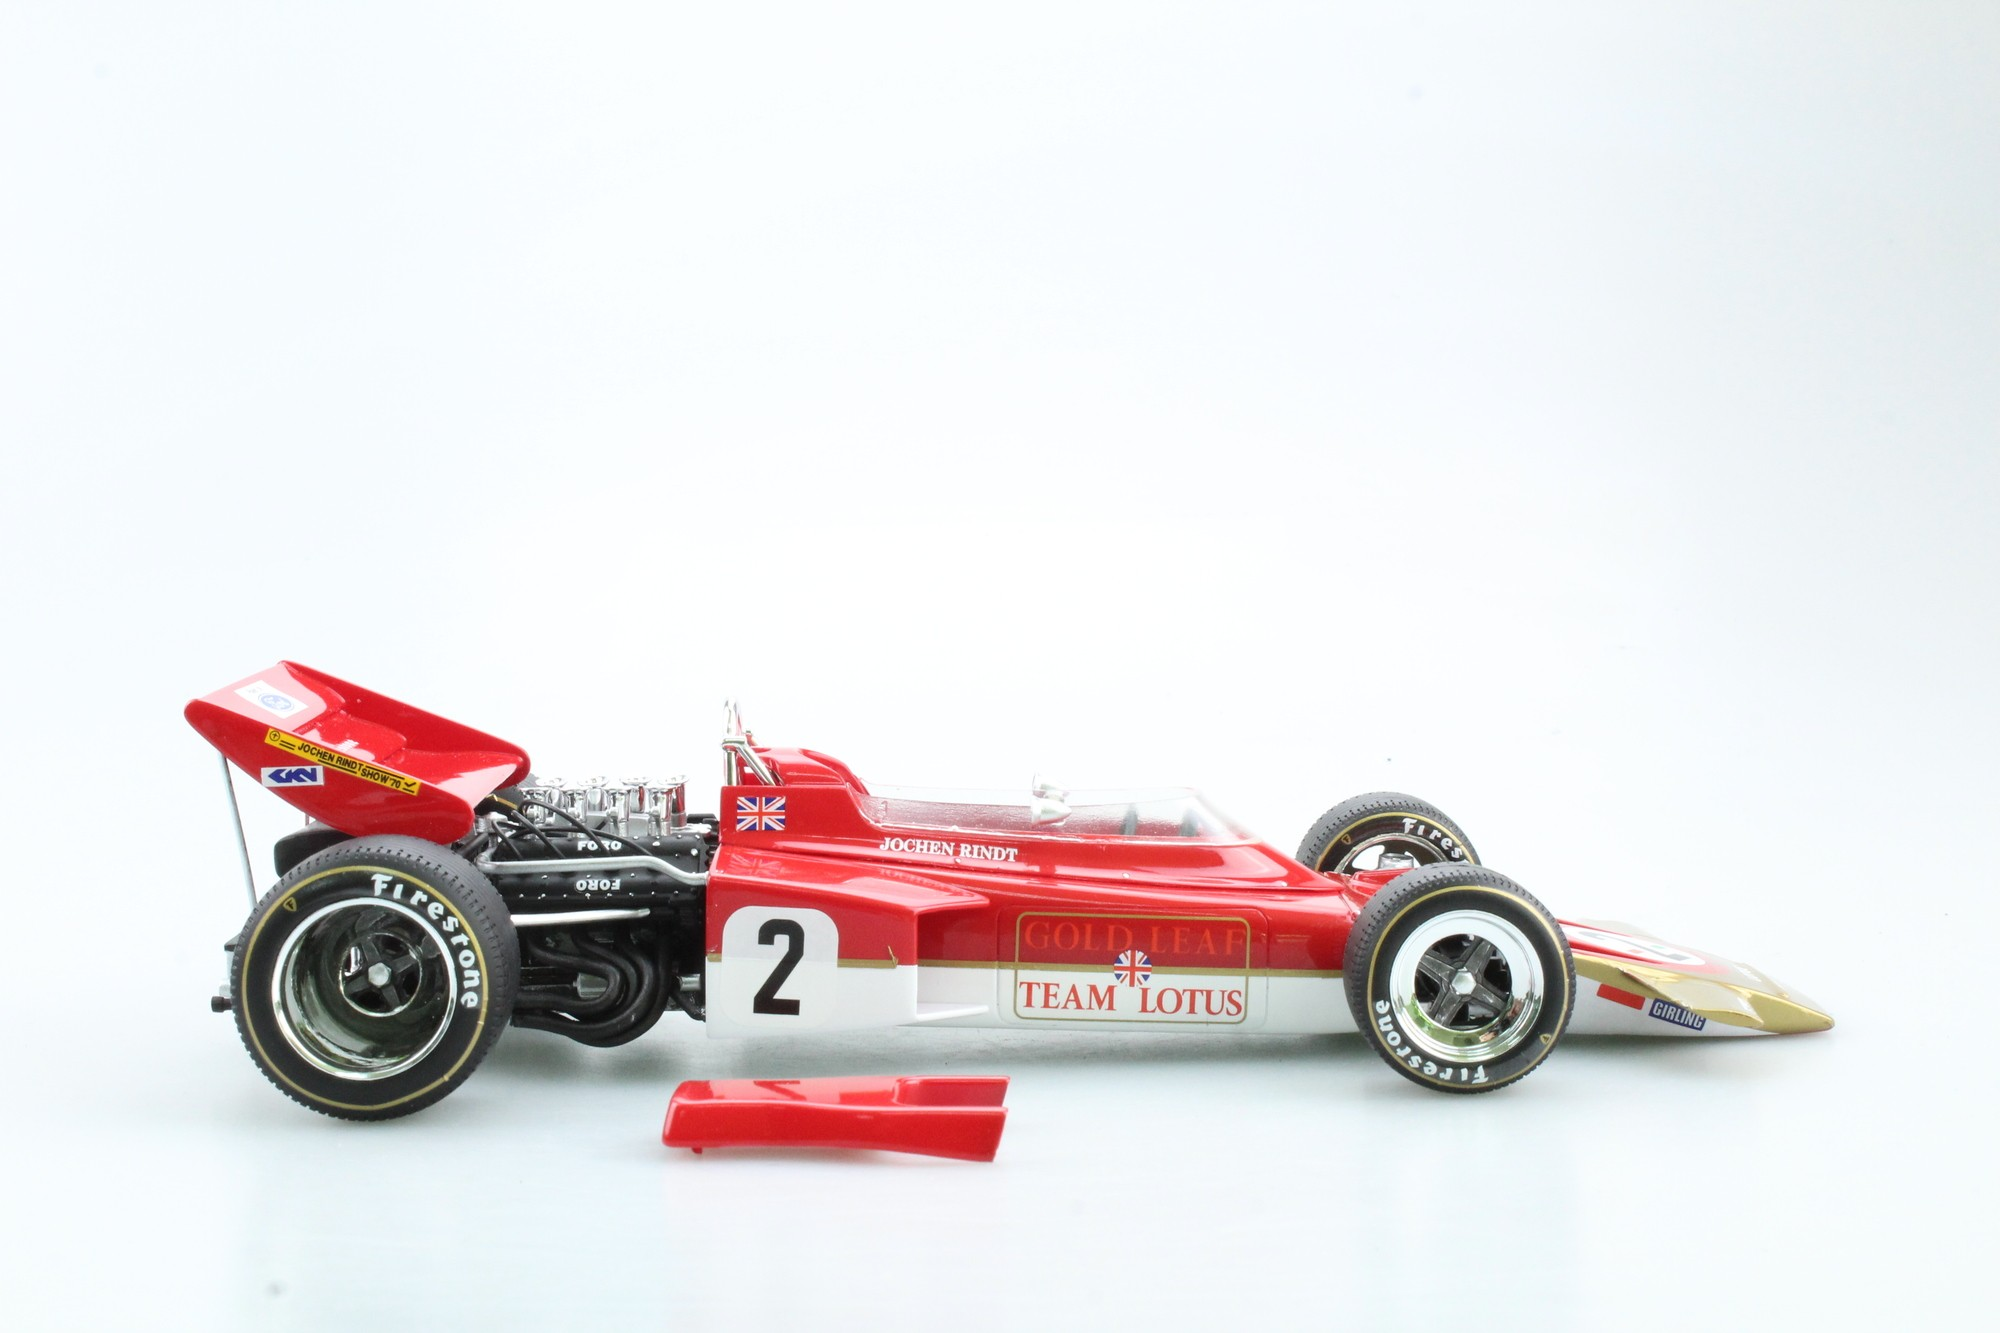 Lotus 72c World Champion J. Rindt